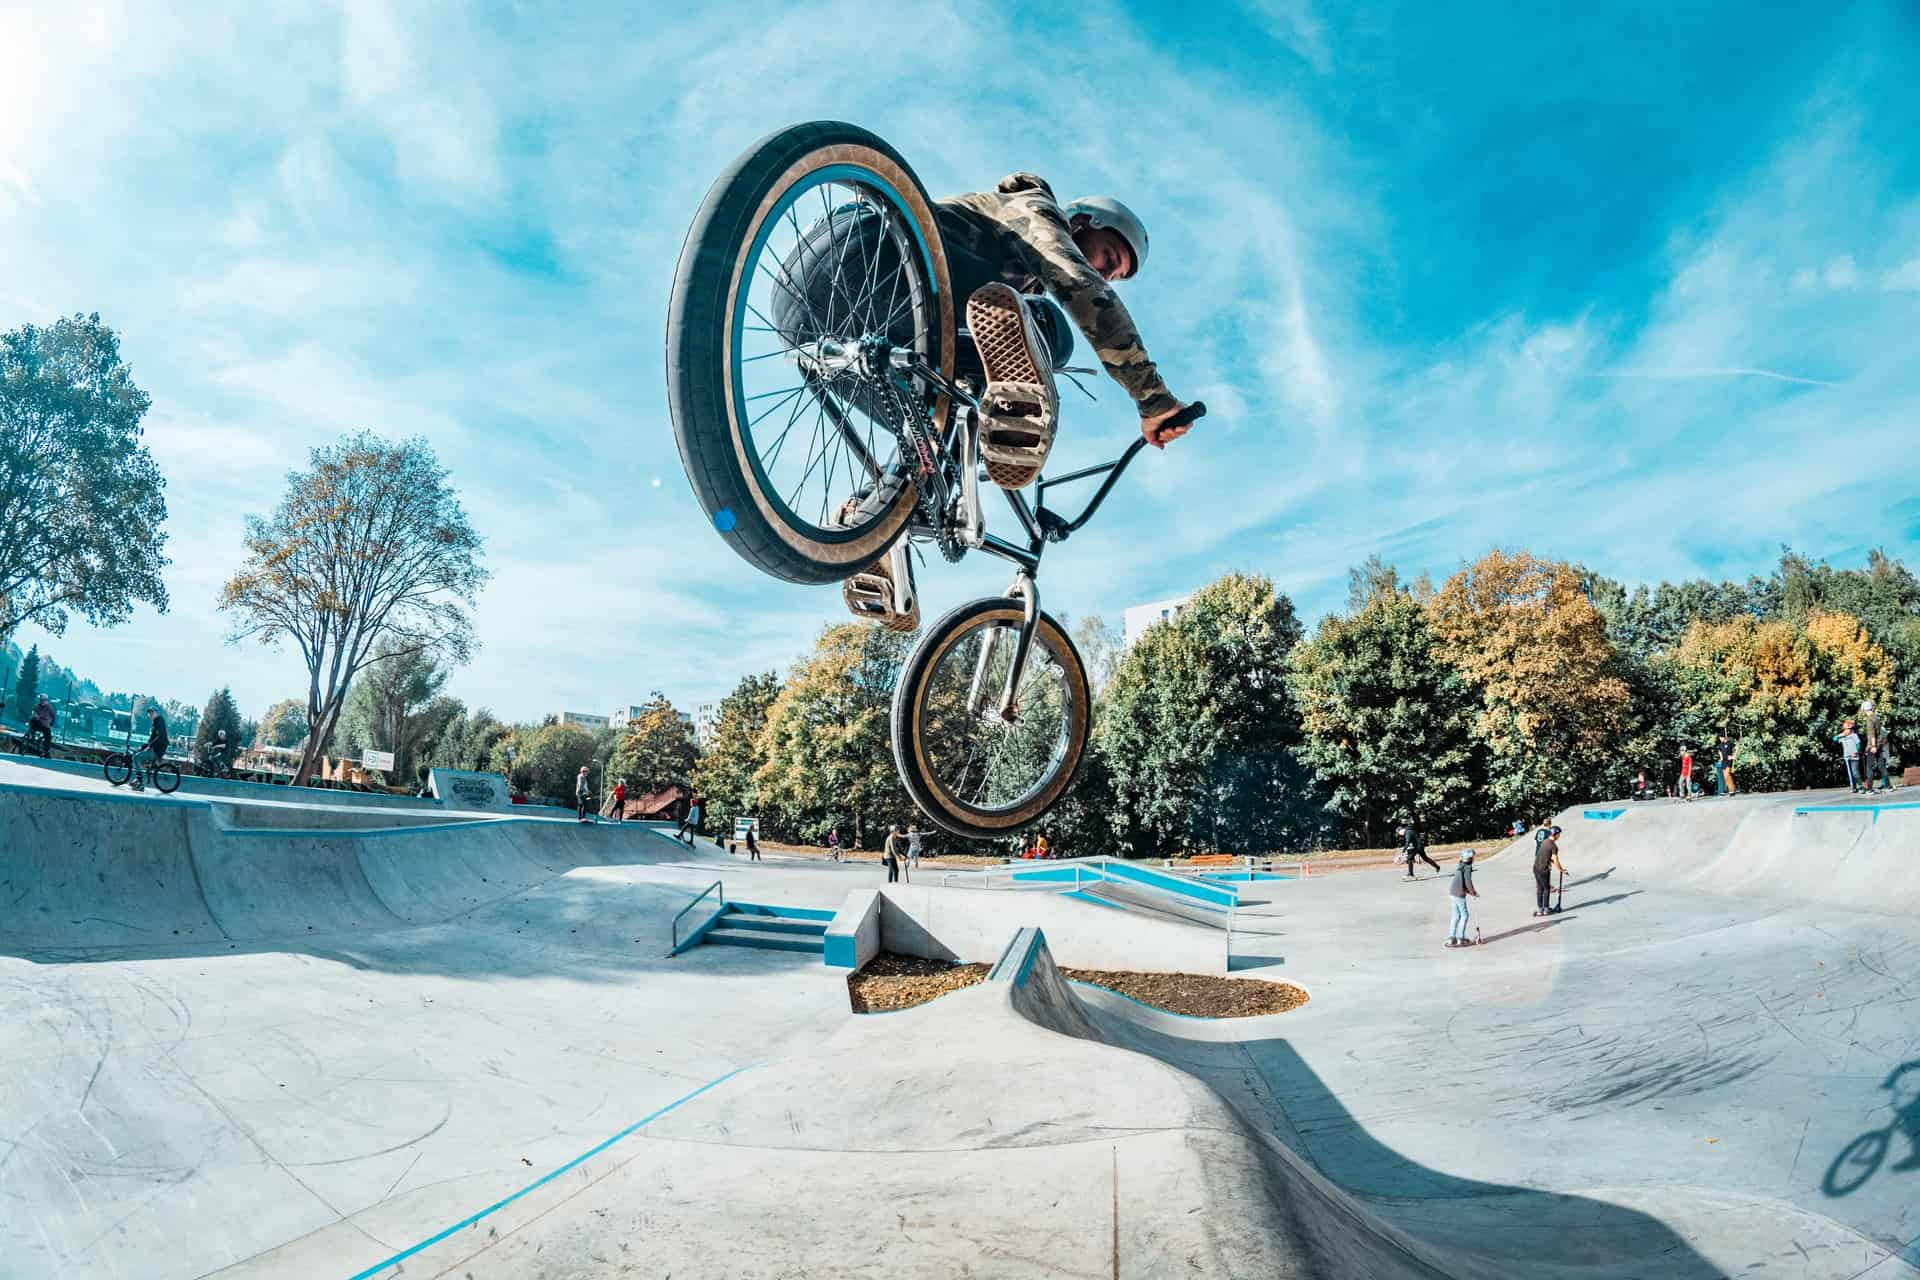 BMX bikes are not good for commuting due to difficult riding when seated, limited gear range, and lack of accessory compatibility